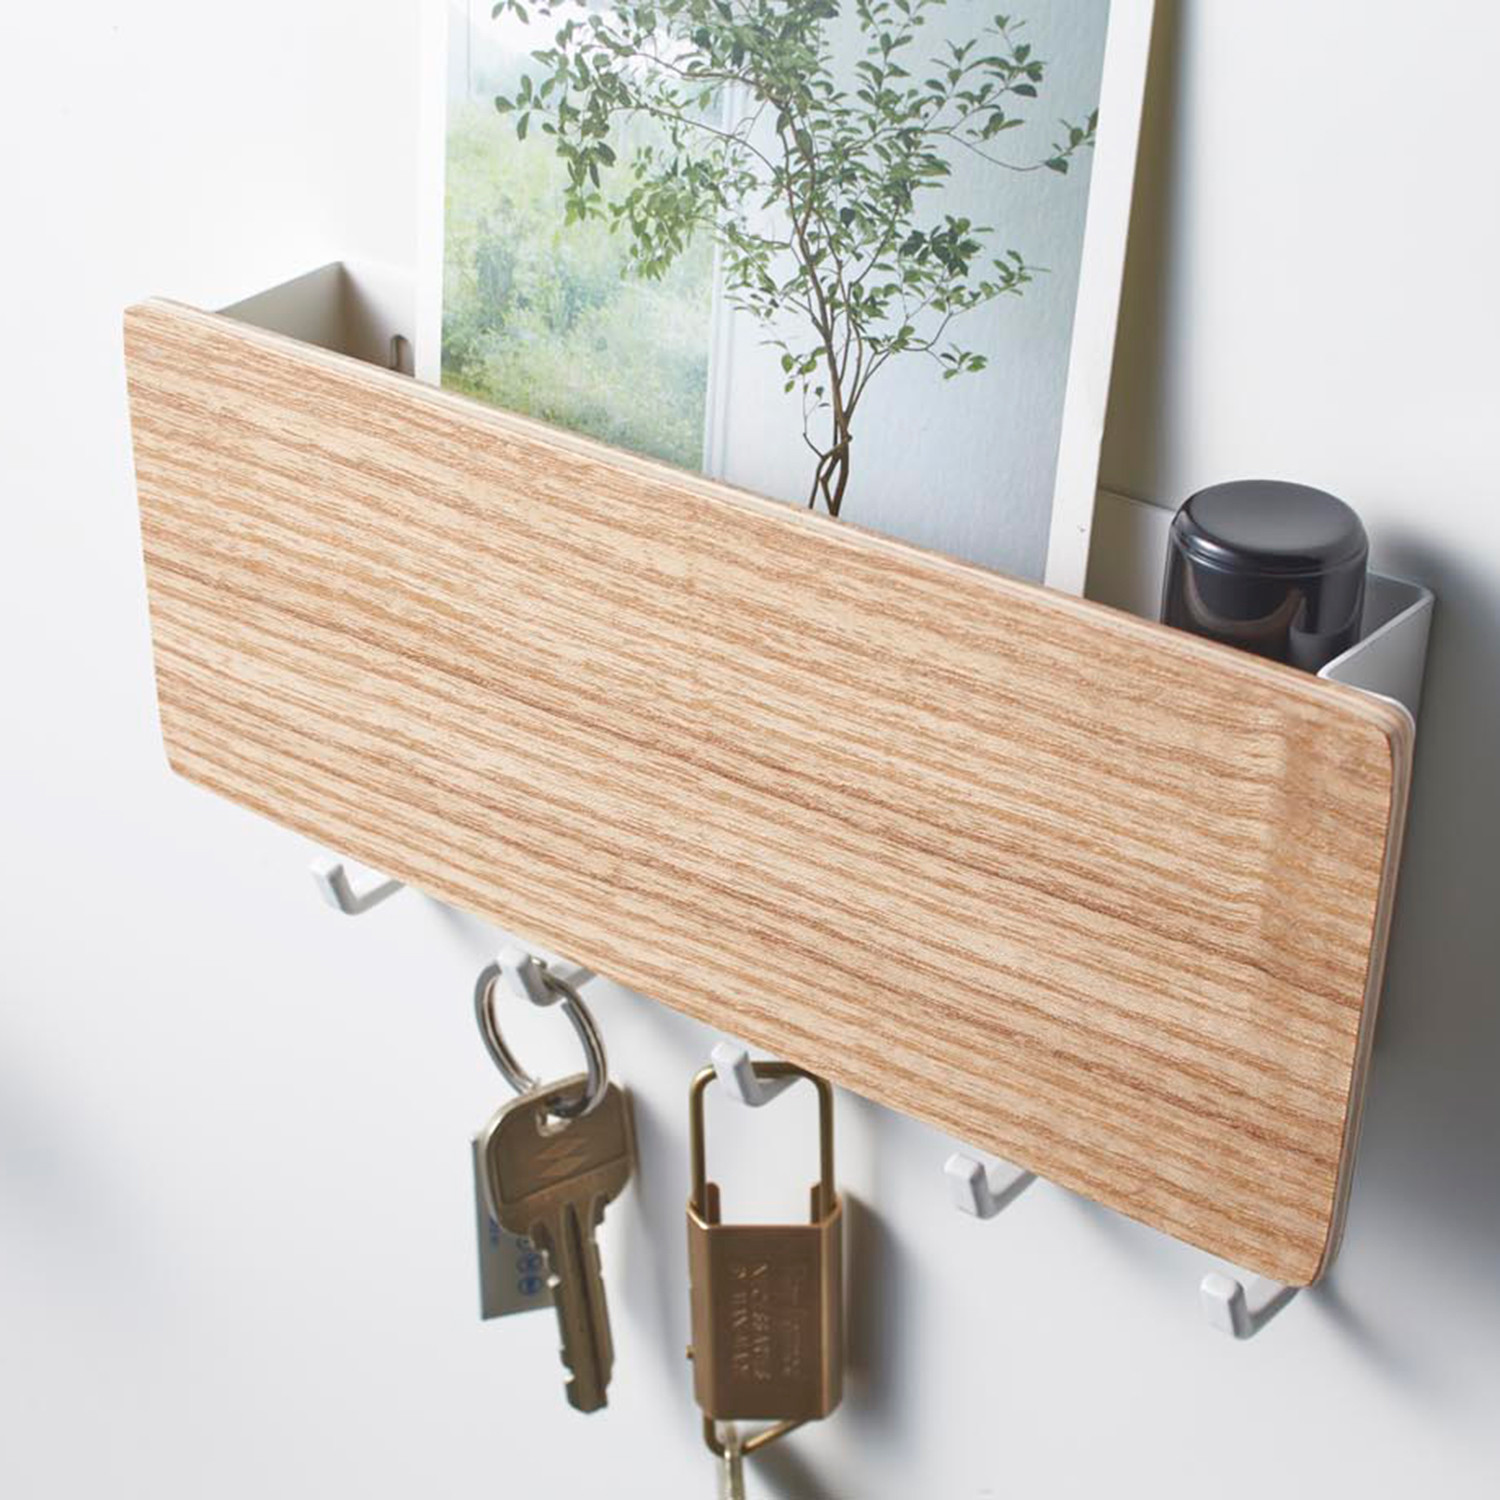 Rin Magnetic Key Hook Tray